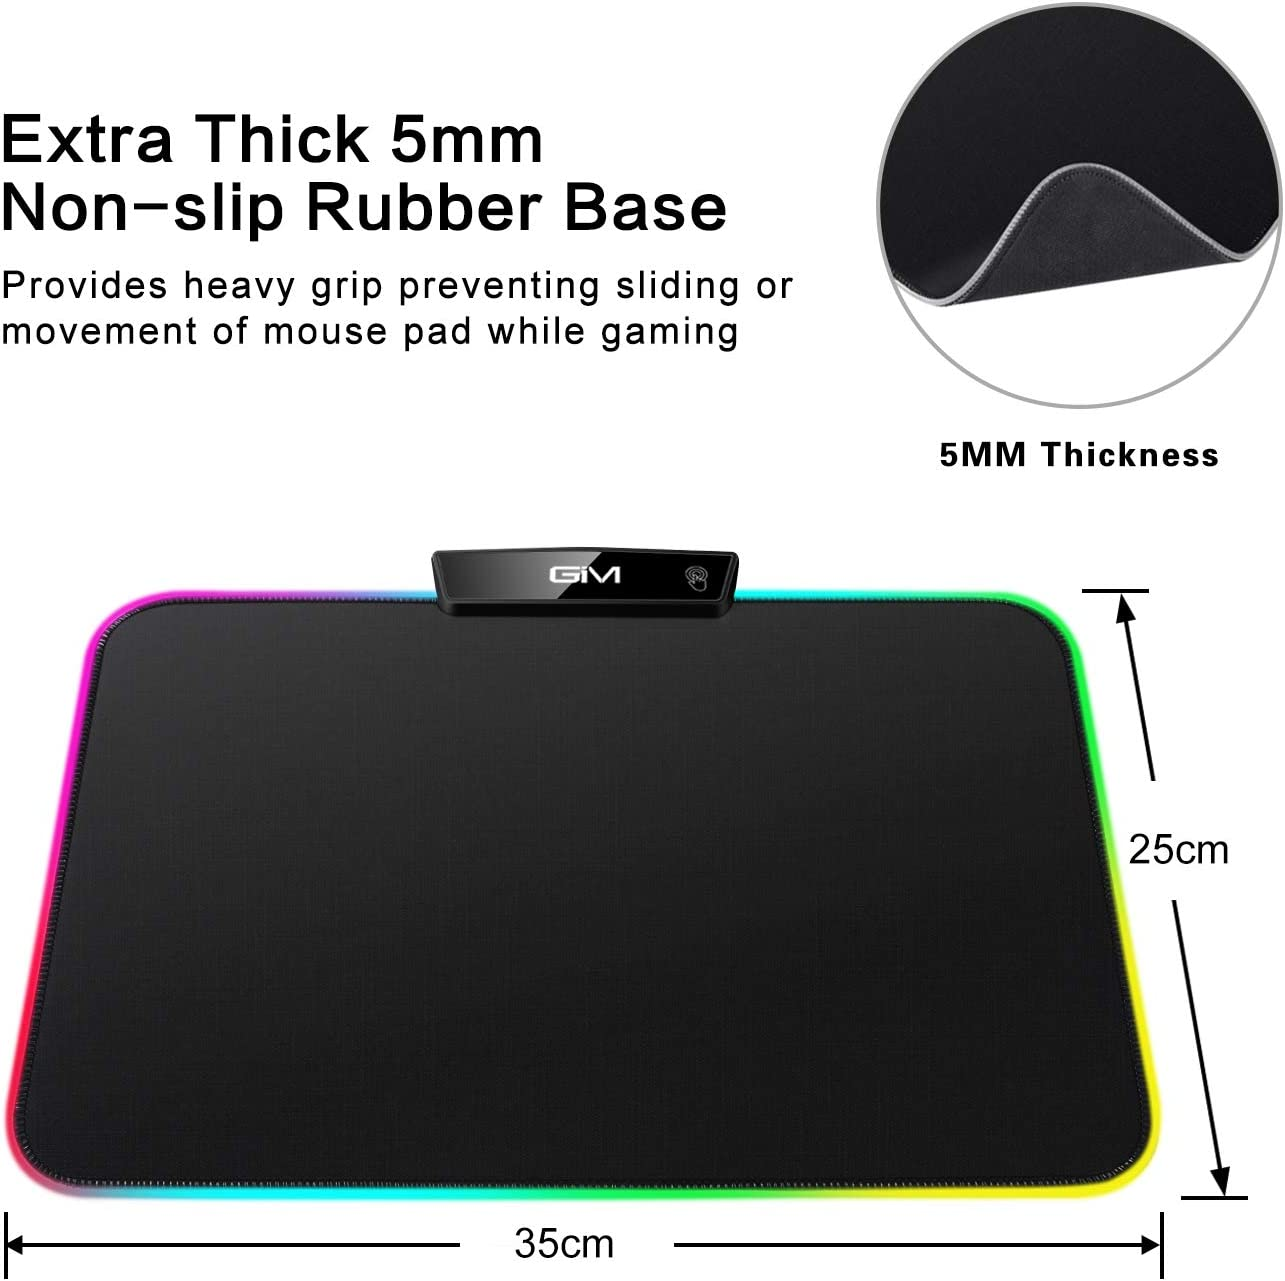 RGB LED Gaming Mouse Pad,GIM LED Mouse Pad Mad with 15 Lighting Modes Non-Slip Rubber Base USB Computer Mousepad for Gamer,Office and Home 13.8 x 9.8 x 0.2 Inch